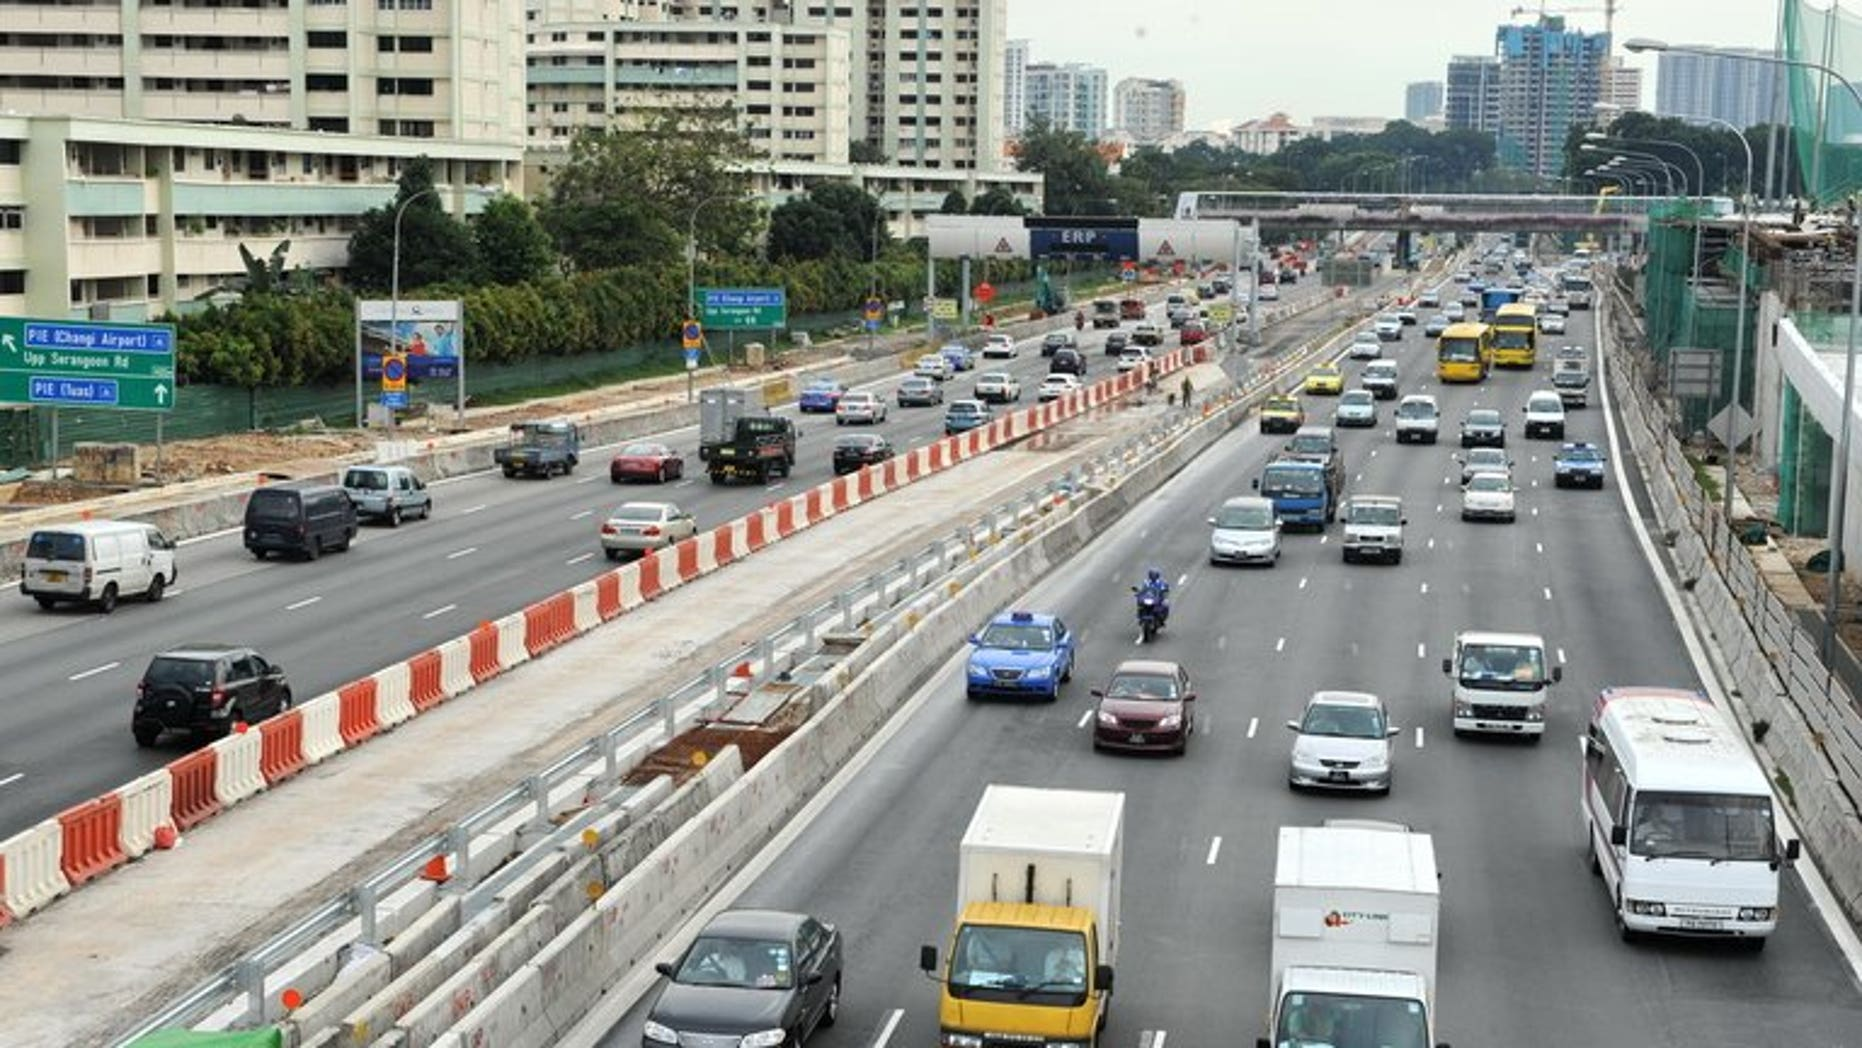 File photo of traffic on a central expressway in Singapore. A Singapore bus driver has been fired after he was caught on video trimming his nails while driving along an expressway.